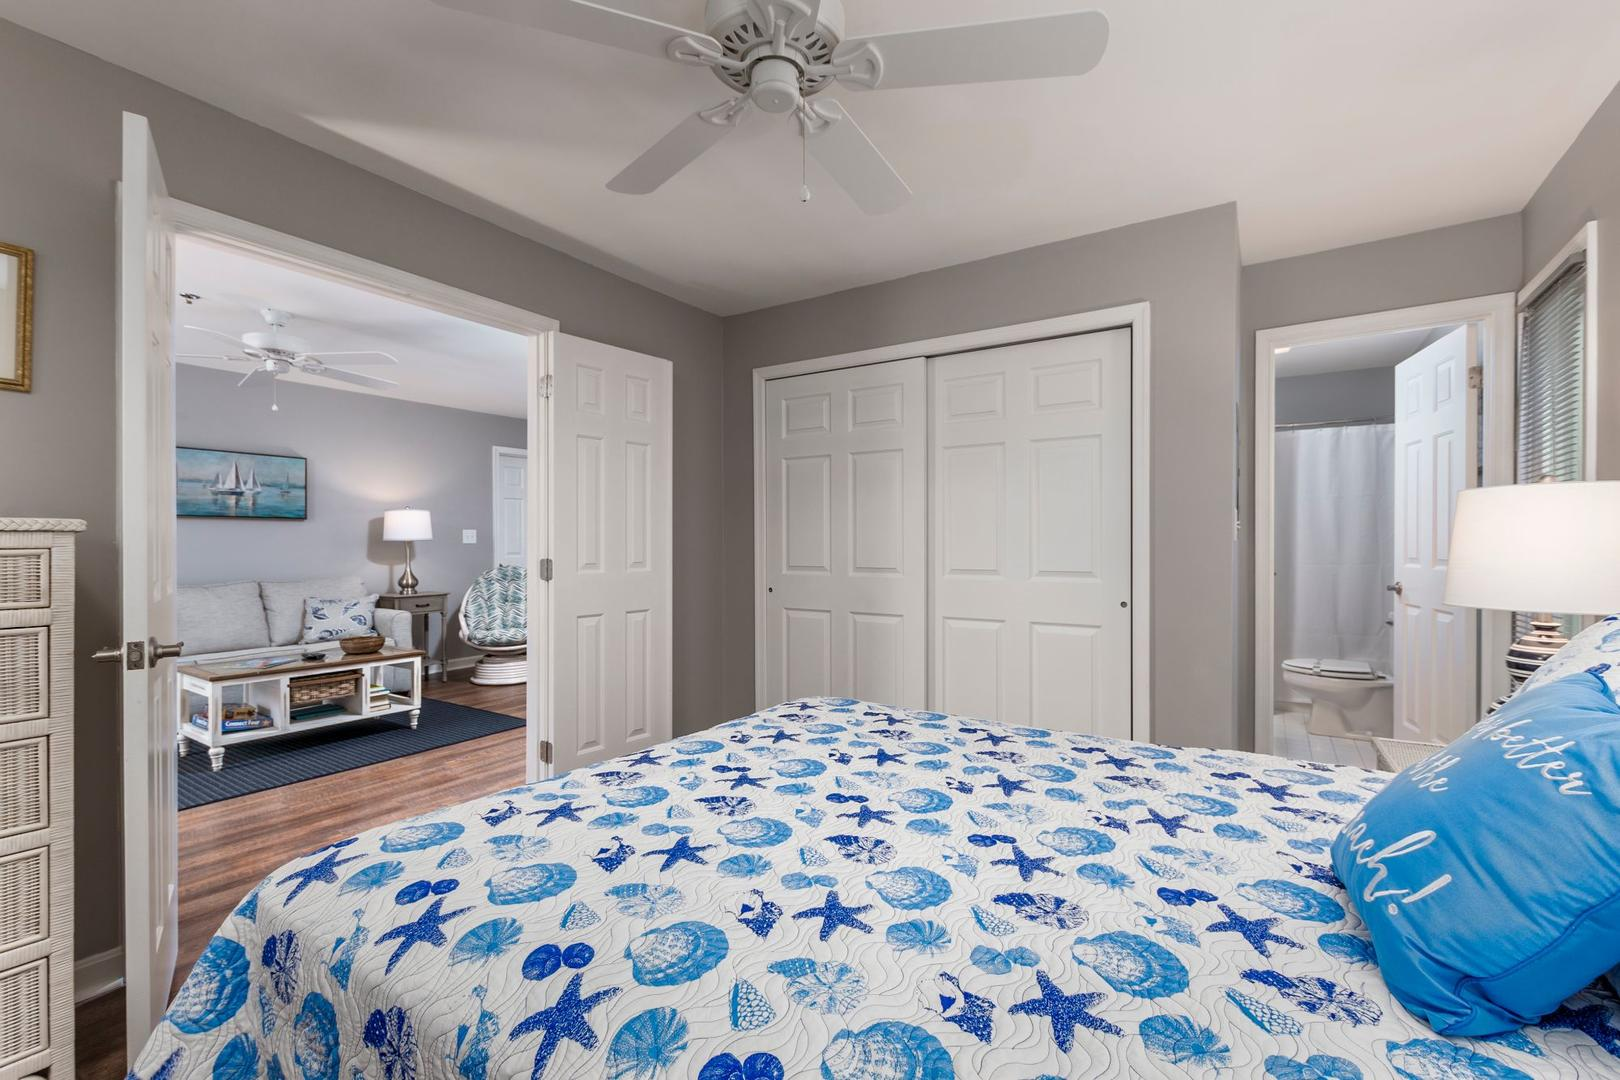 Harbour Club 8E - Bedroom 1